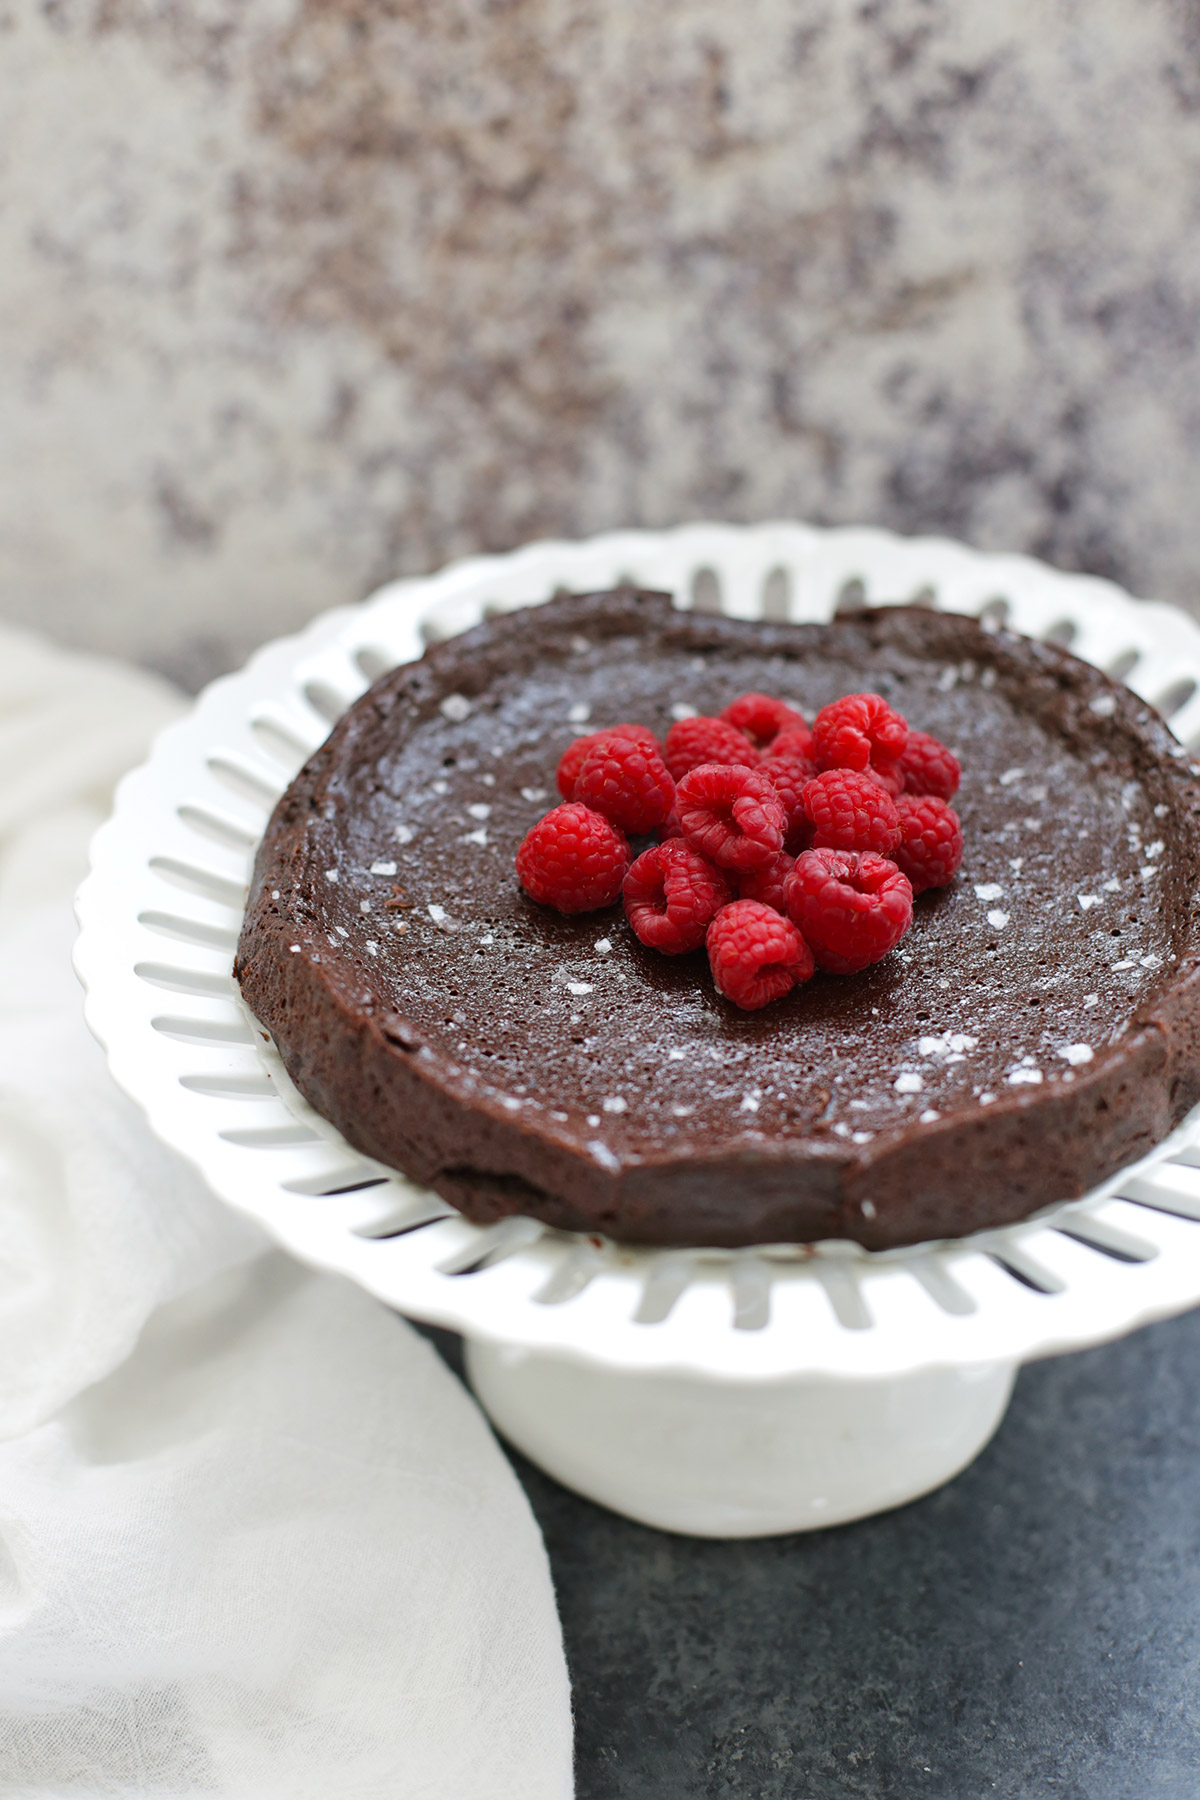 Front view of a flourless chocolate cake topped with raspberries on a white cake stand